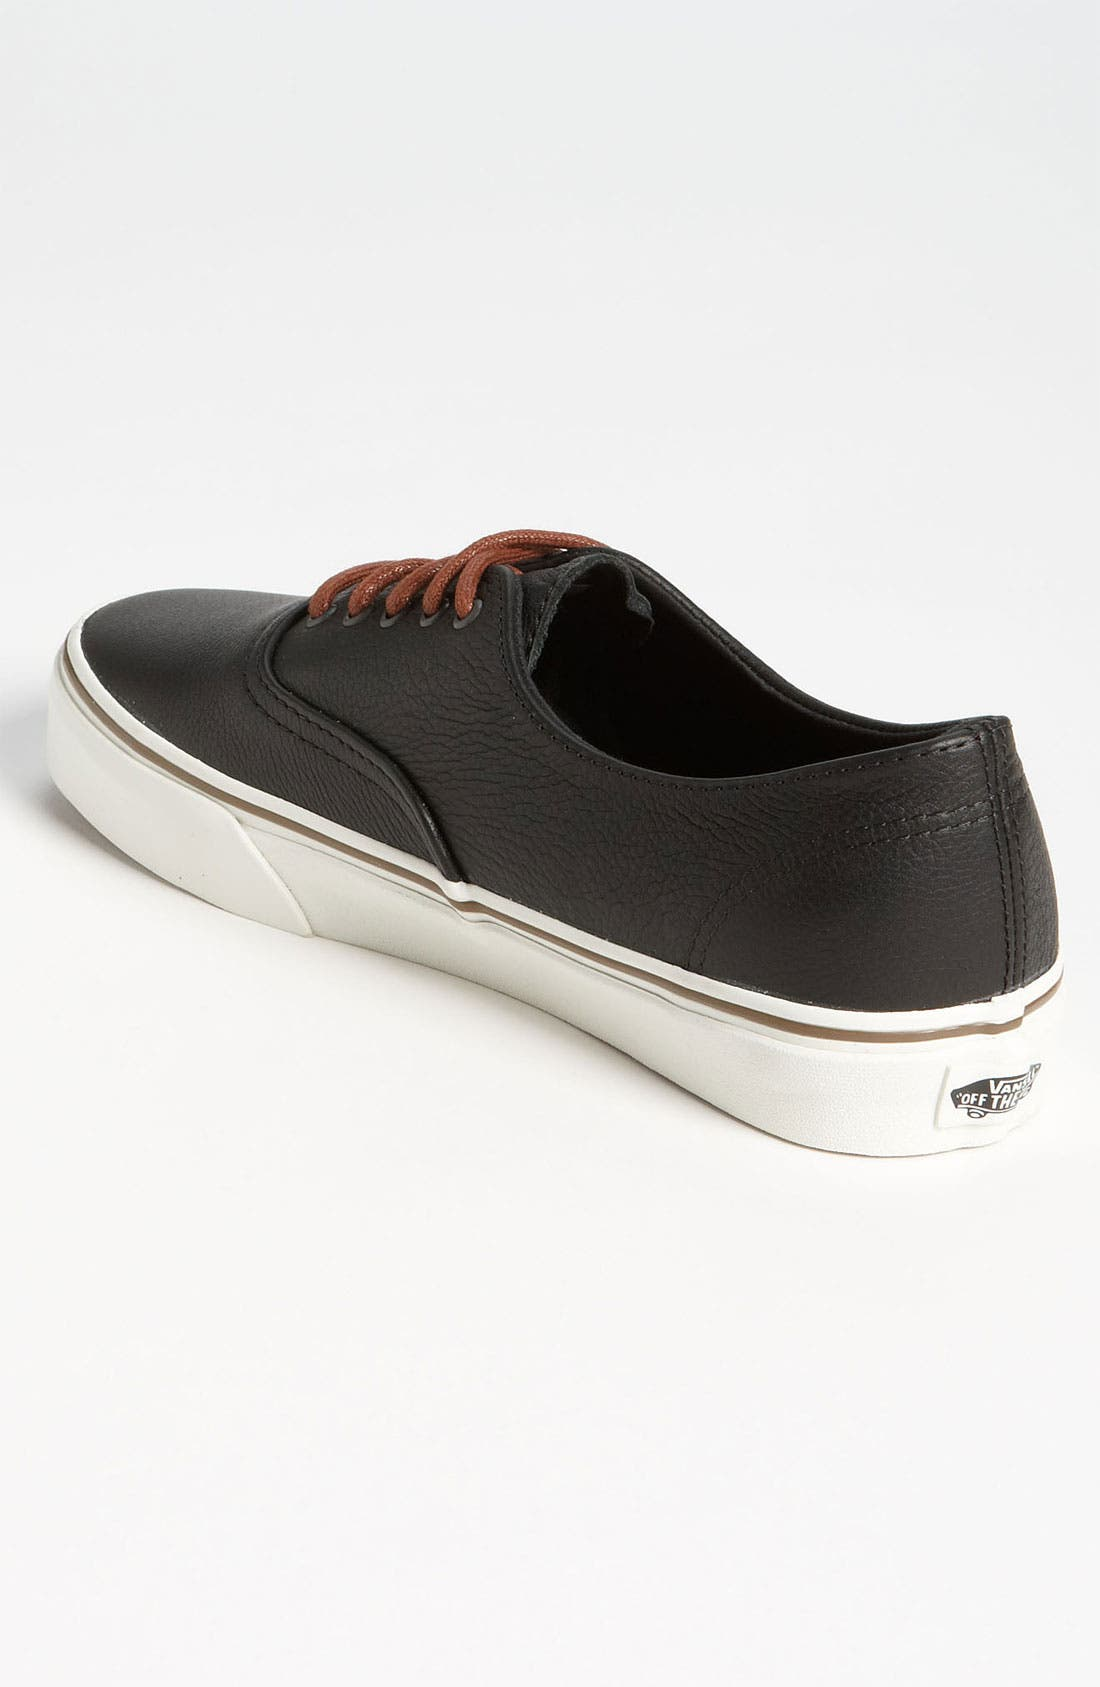 Alternate Image 2  - Vans 'Cali - Authentic Decon' Leather Sneaker (Men)